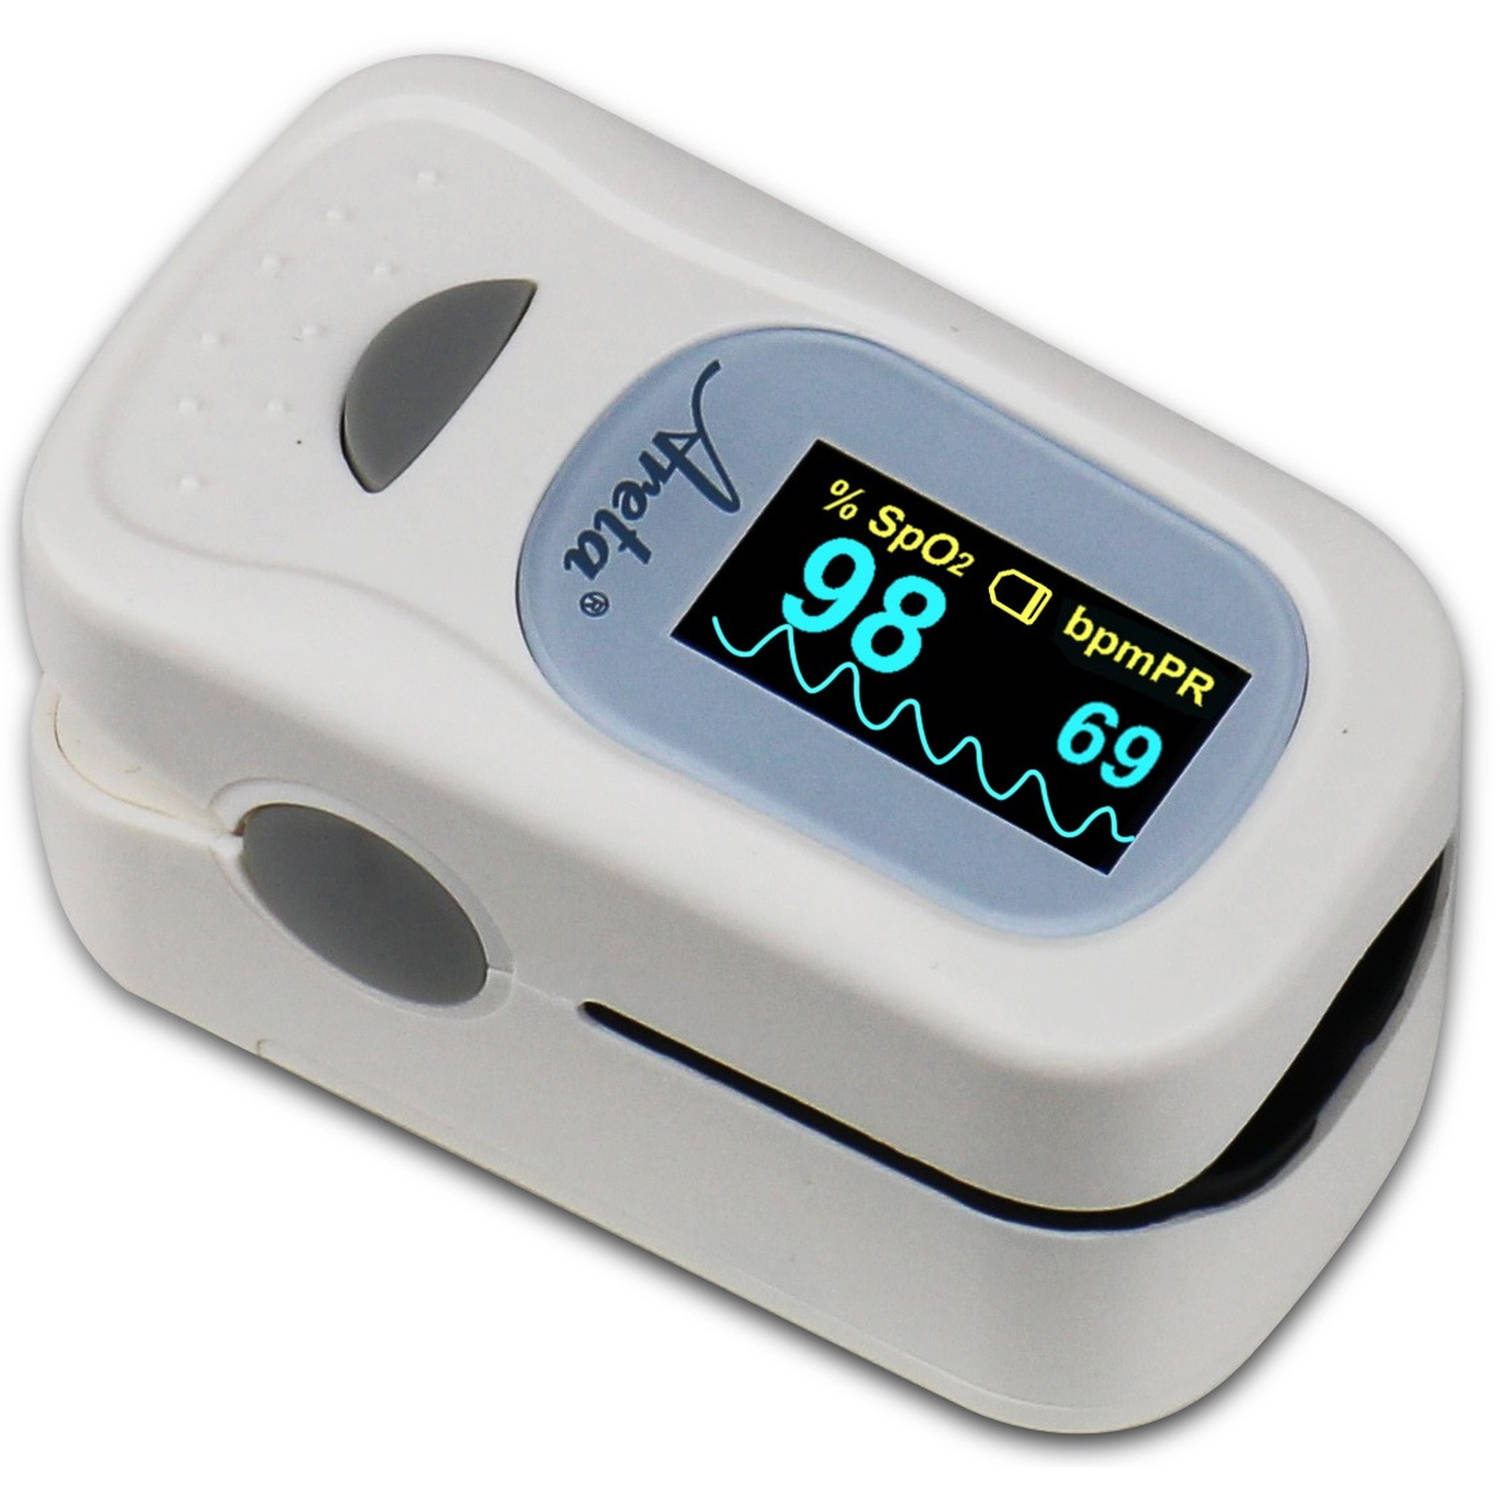 Easy@Home Areta Fingertip Pulse Oximeter with Luxury Dual-color OLED Display in 4 Directions and 8 Modes and Built-In Alarm Setup, Free Carry Case and Neck/Wrist Cord